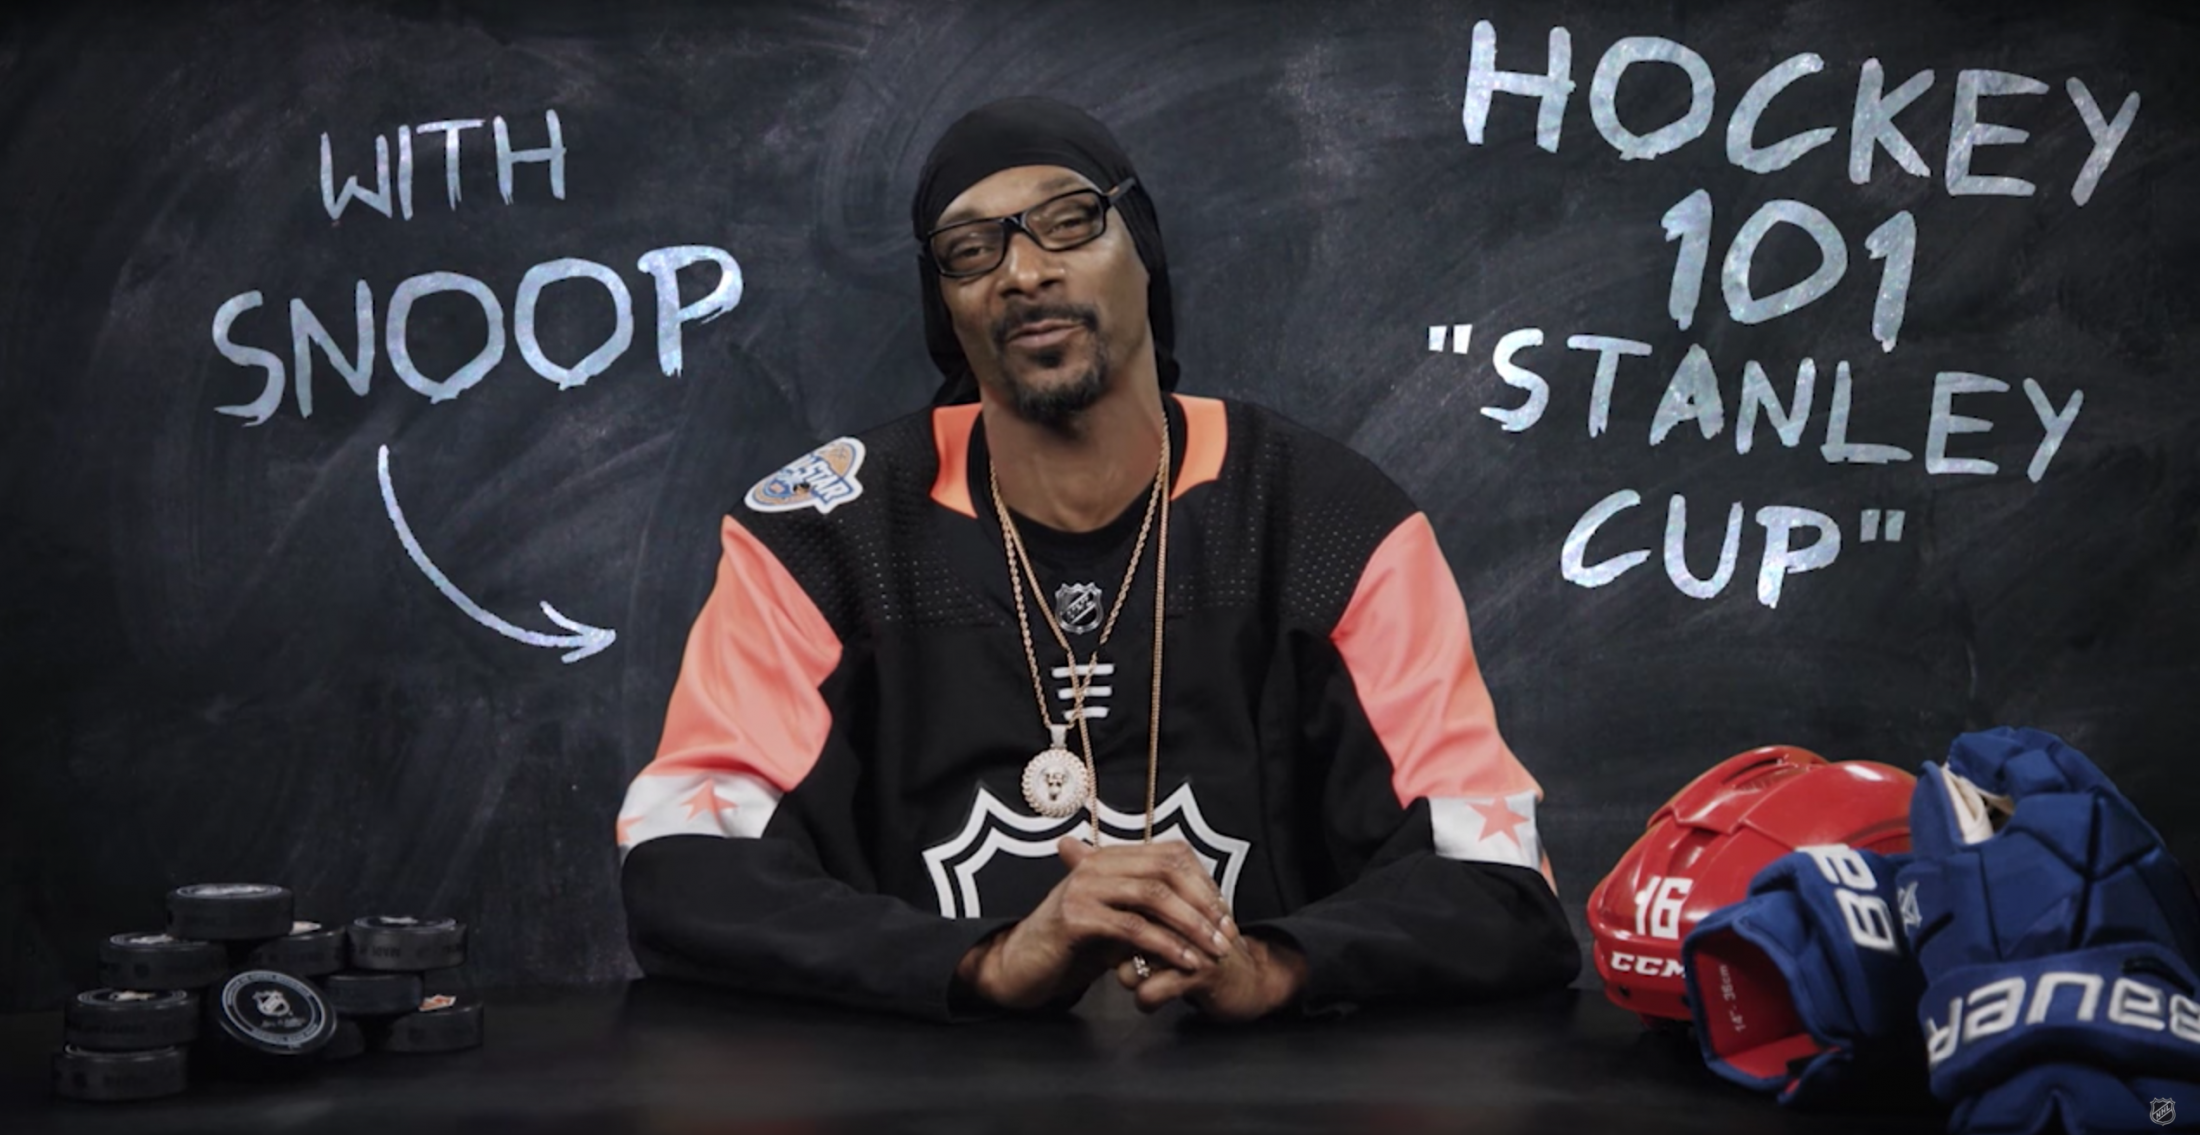 Thumbnail for Hockey 101 with Snoop Dogg